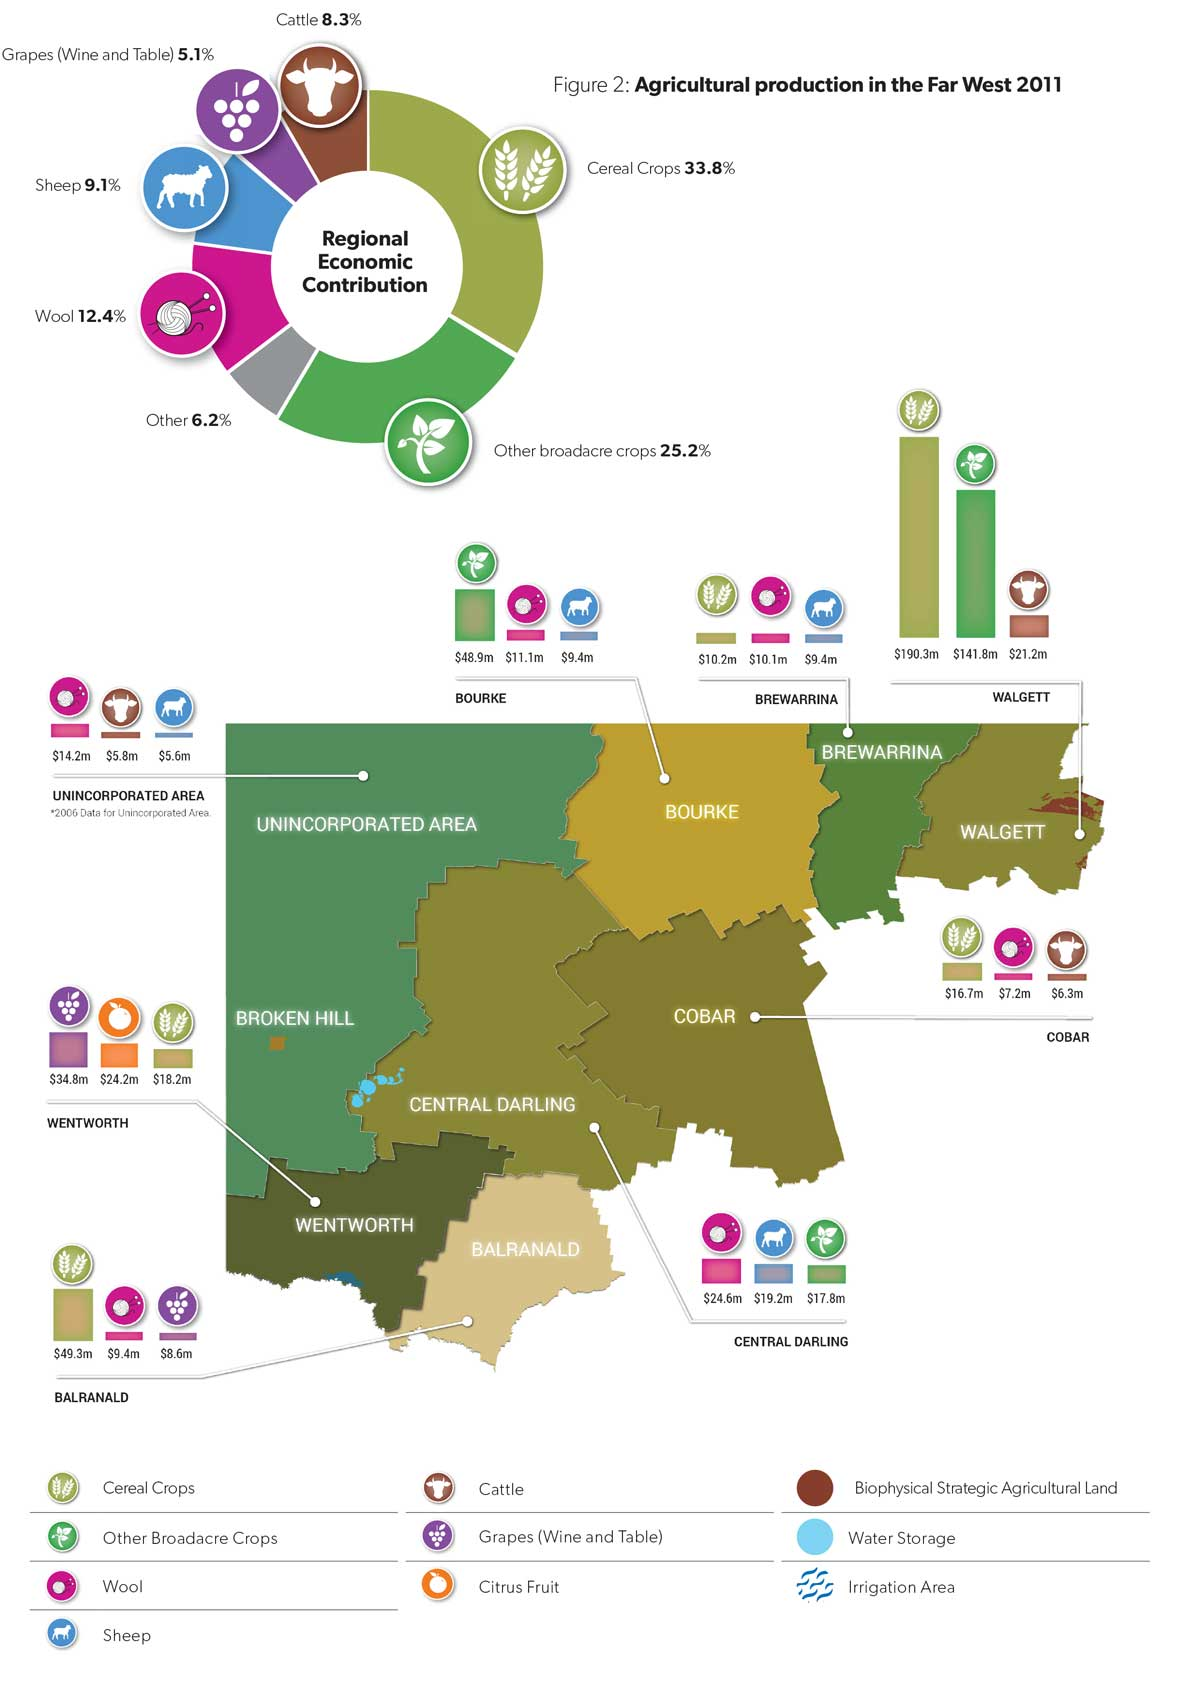 Map infographic showing the breakdown of agricultural production in the Far West in 2011, split by product and location